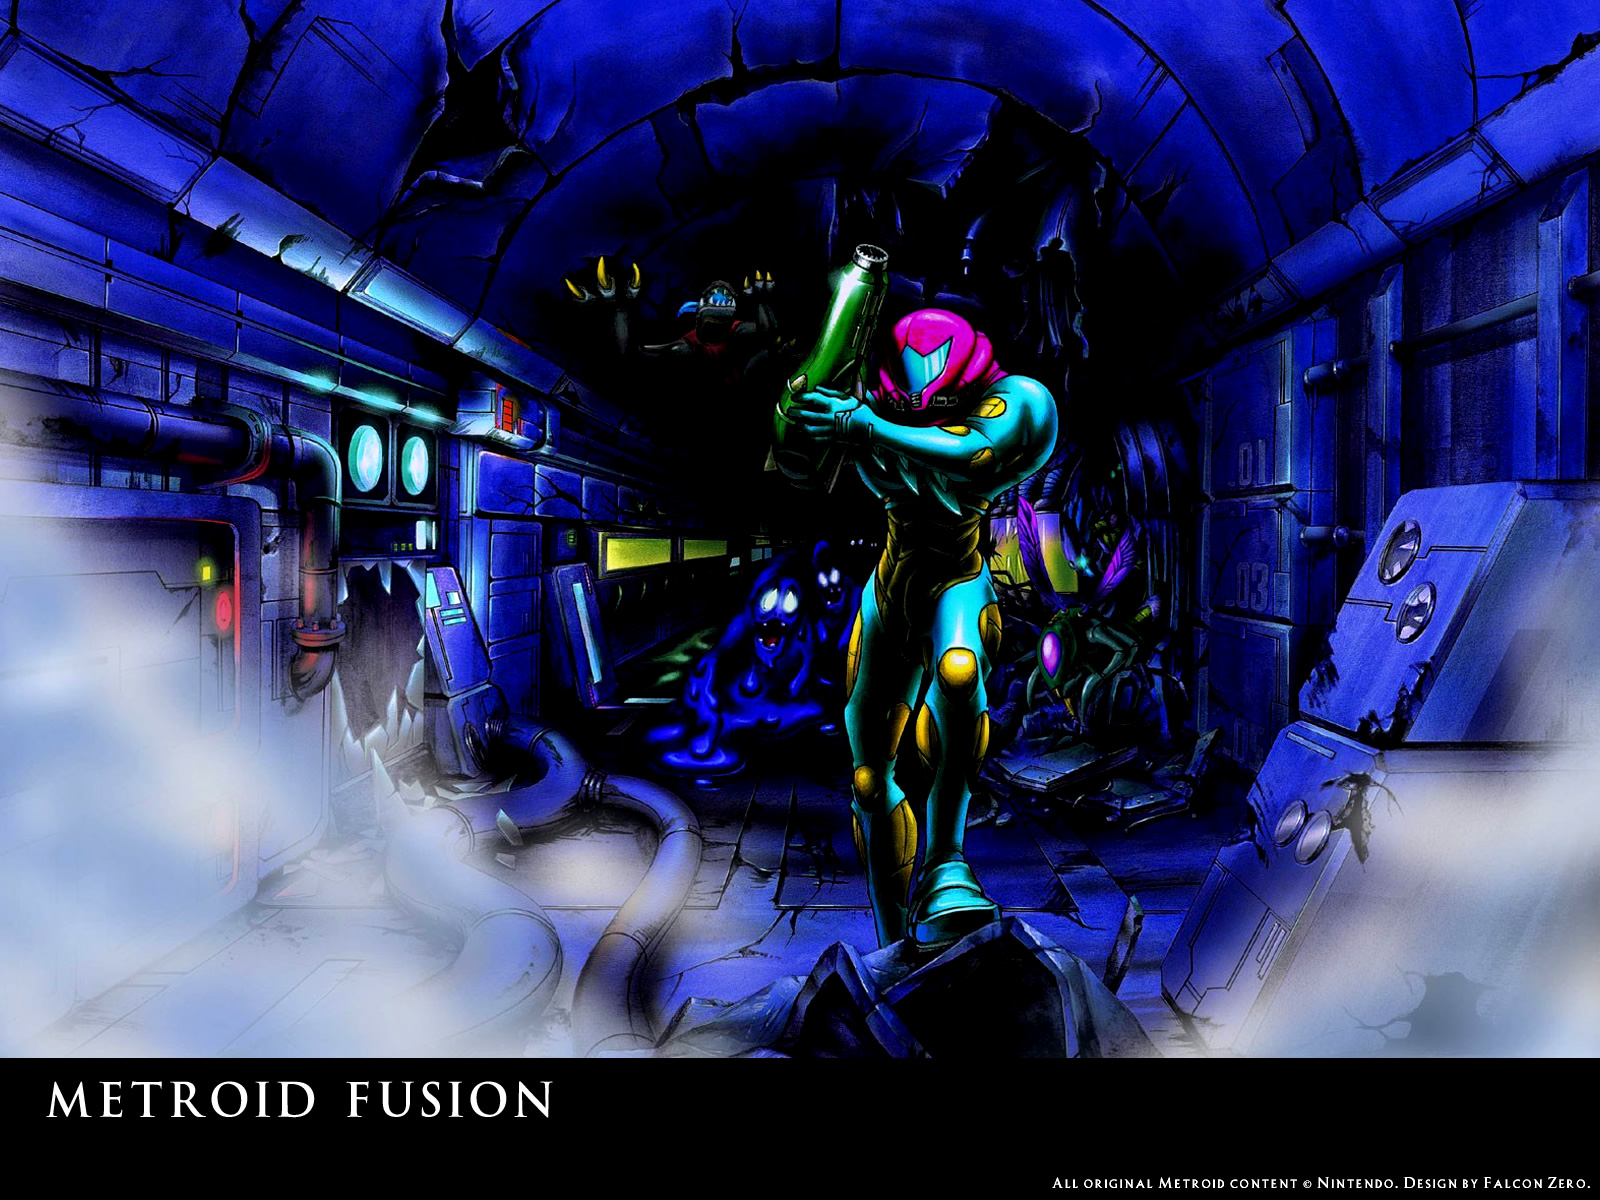 wallpaper - fan creations (metroid recon)